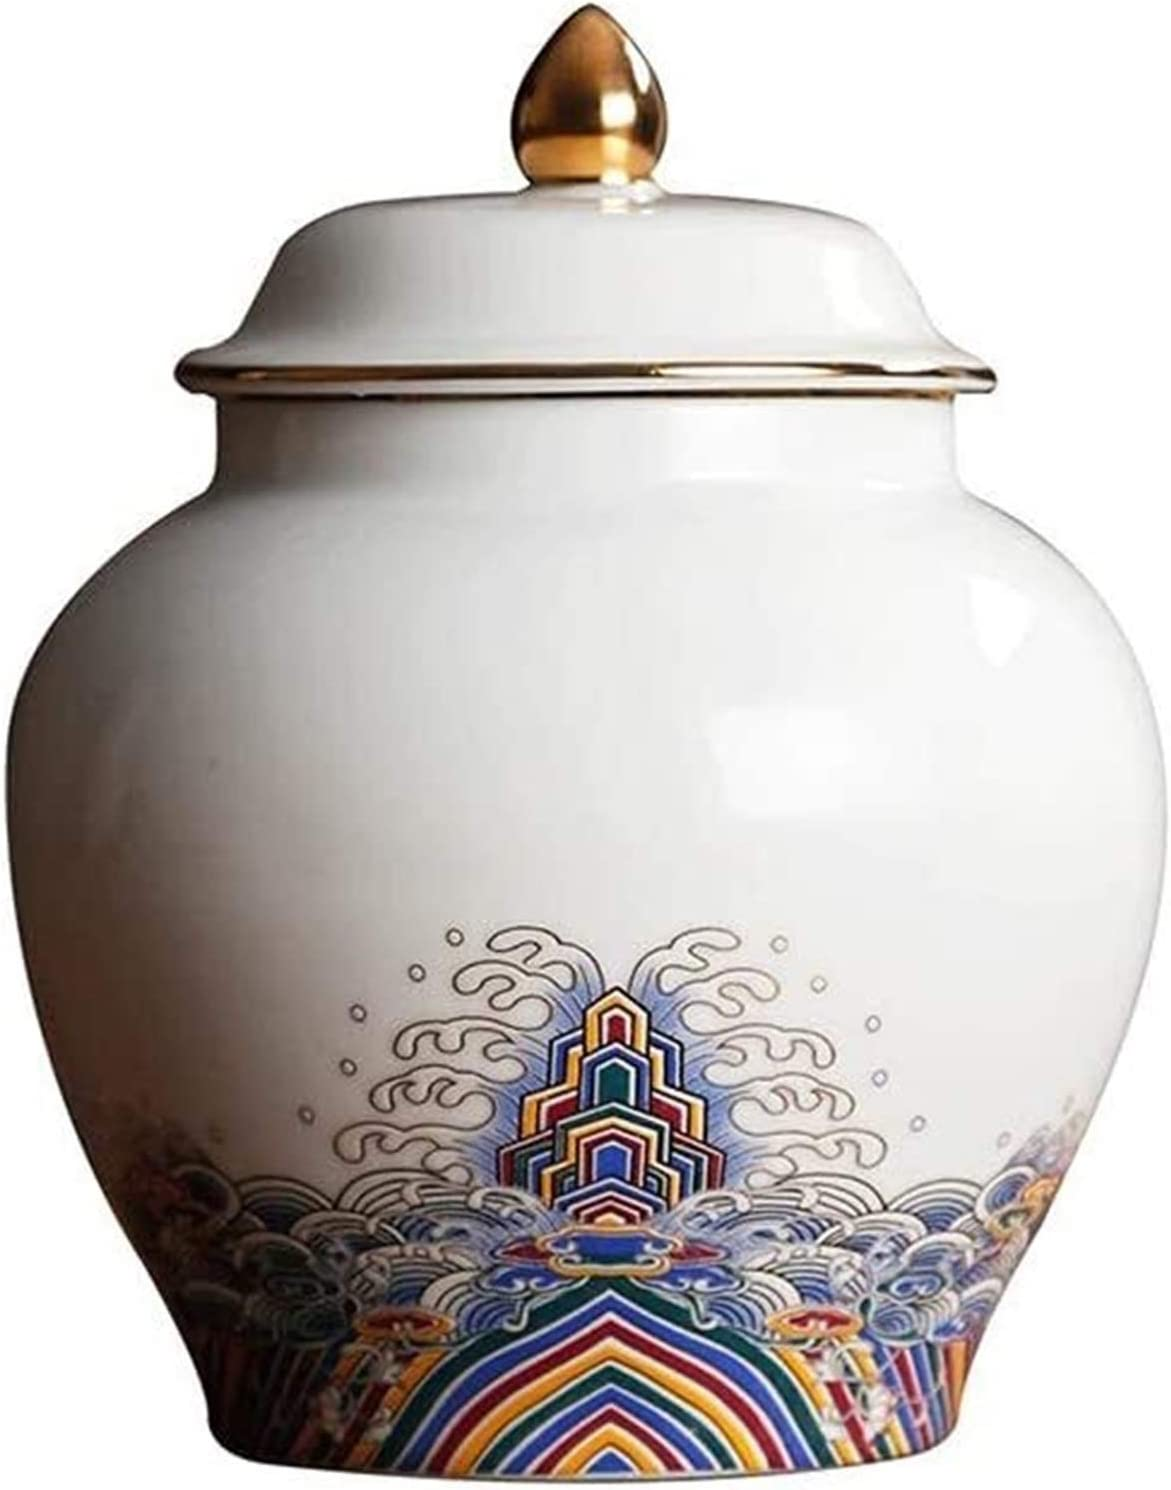 Cremation Urns for Selling and selling Adult Funeral Burial Ashes Decorative half